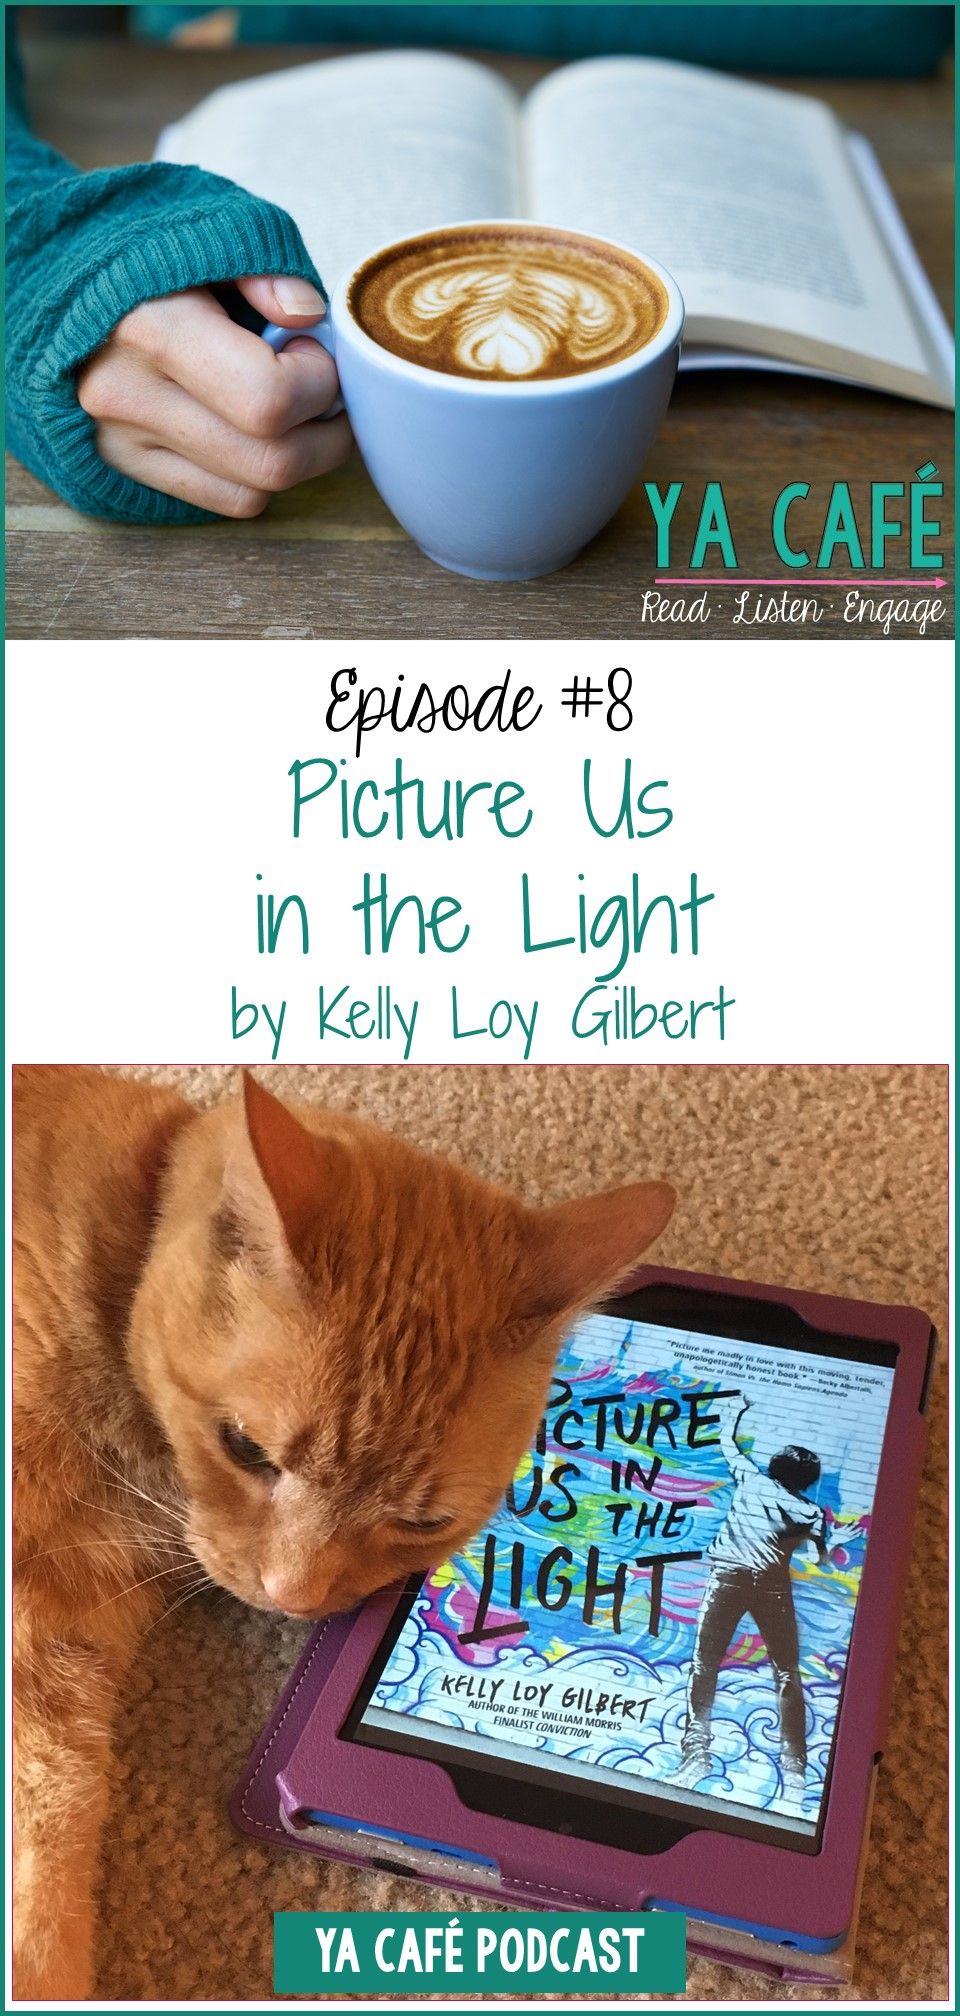 Picture Us in the Light: YA Cafe Podcast episode pin